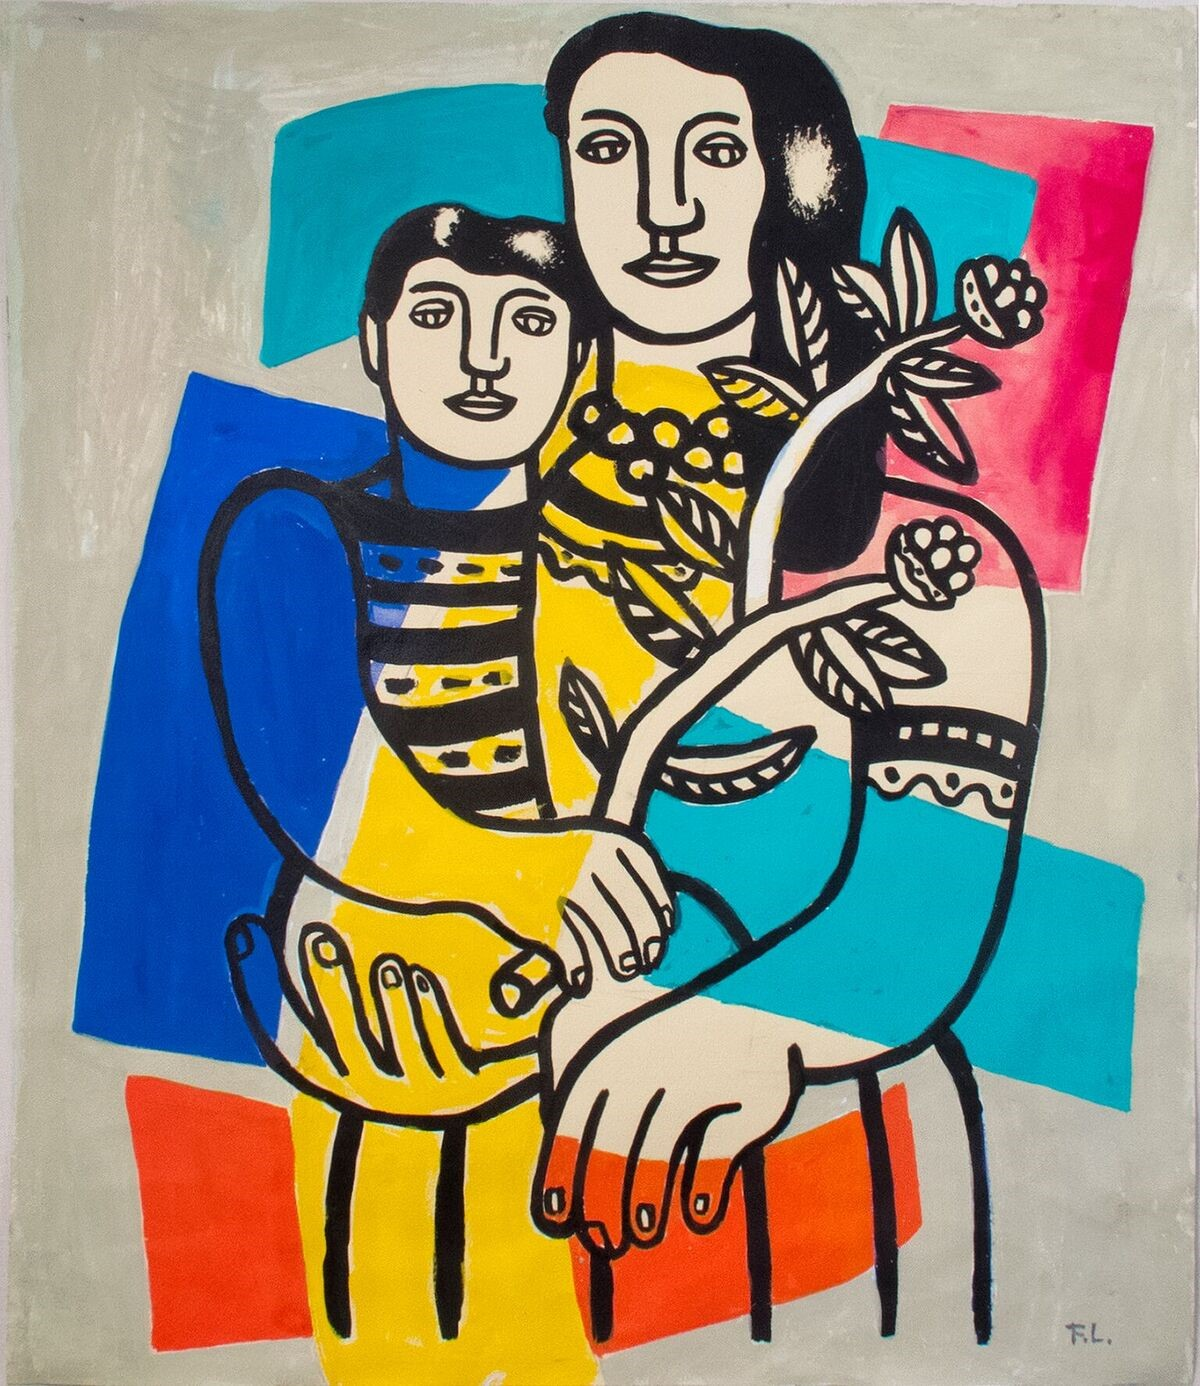 Review: 'Degas to Picasso' at the Ashmolean